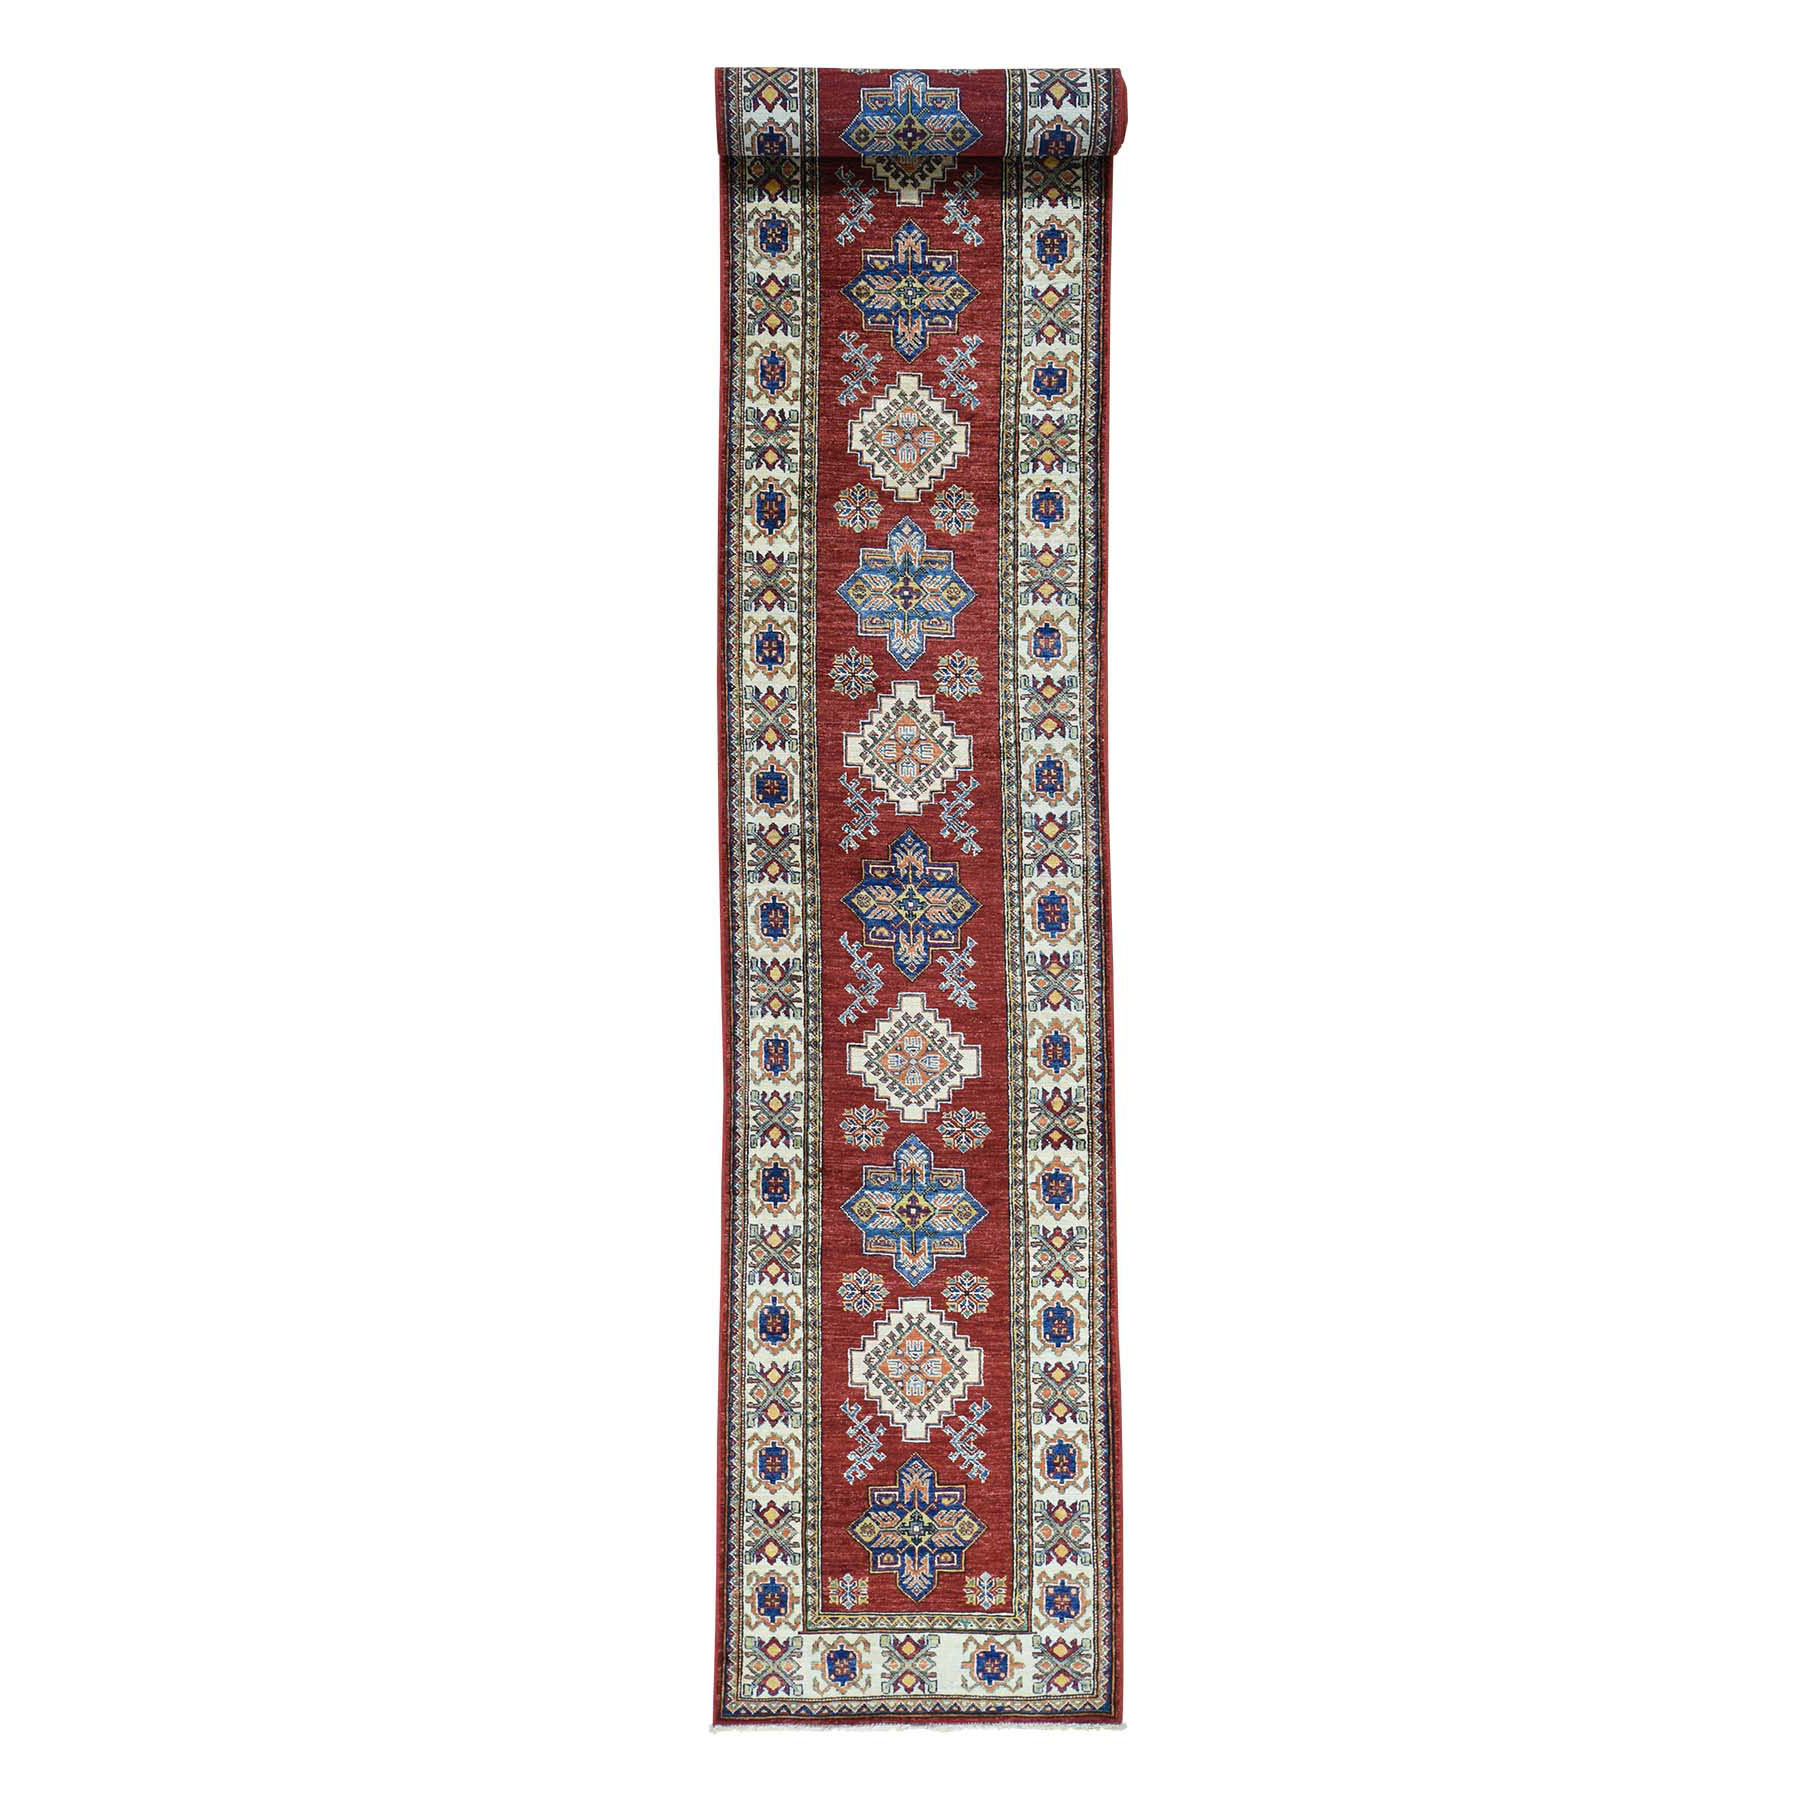 "2'6""x18'3"" Hand-Knotted Super Kazak Tribal Design XL Runner Carpet"